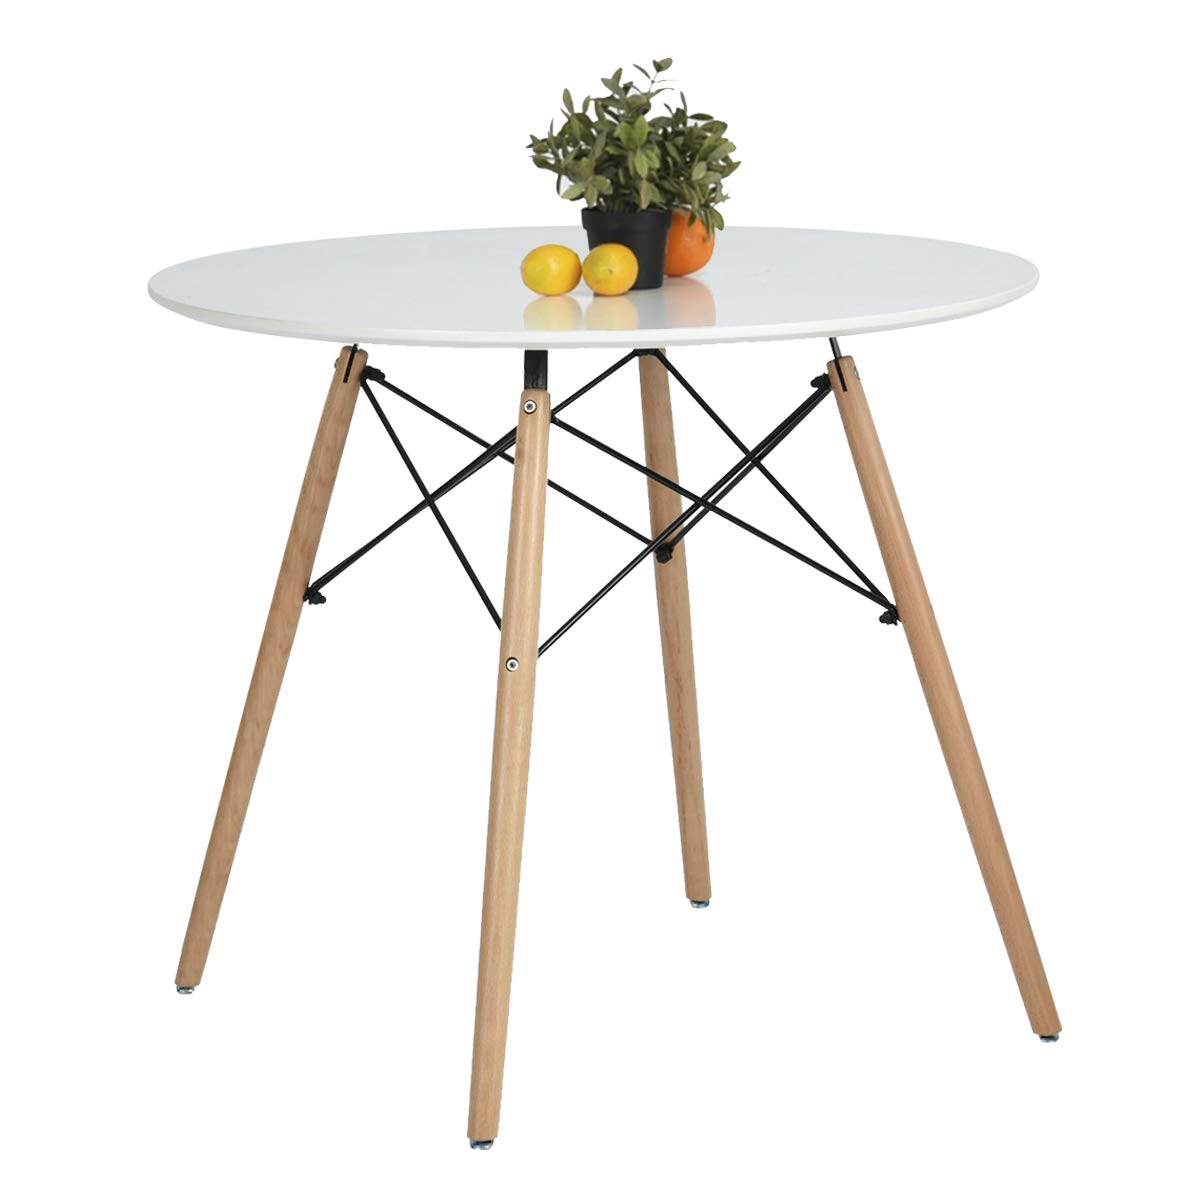 Coavas Kitchen Dining Table White Round Coffee Table Modern Leisure Wooden Tea Table Office Conference Pedestal Desk by Coavas